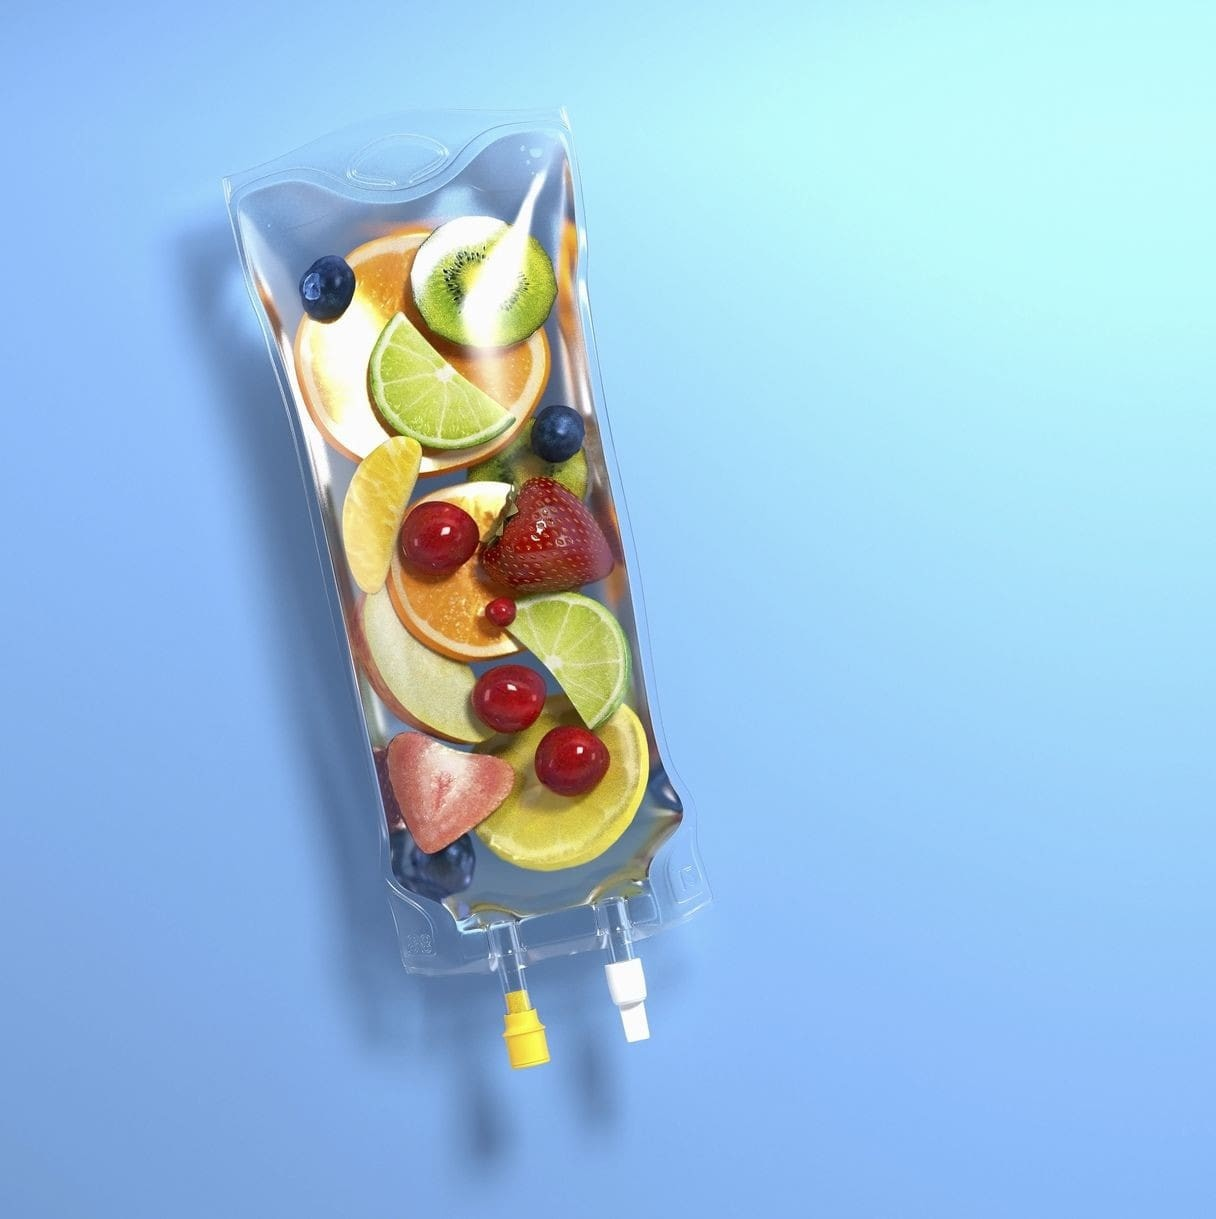 blue background, with an IV Bag full of sliced fruits.